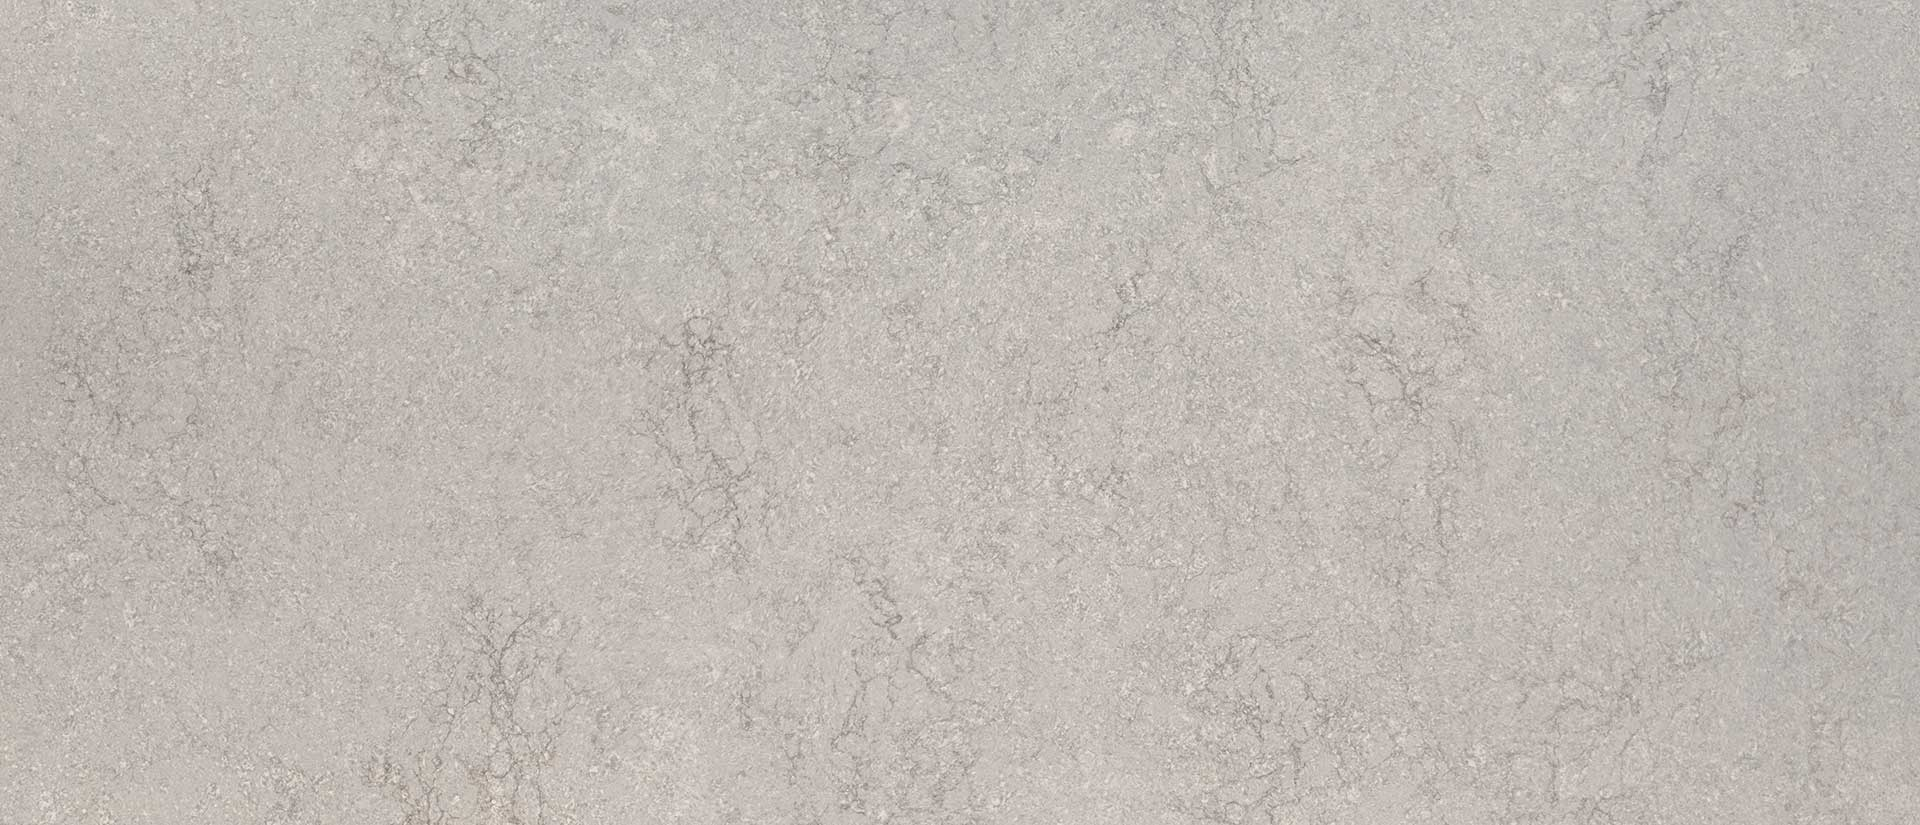 Quartz Countertops That Look Like Concrete